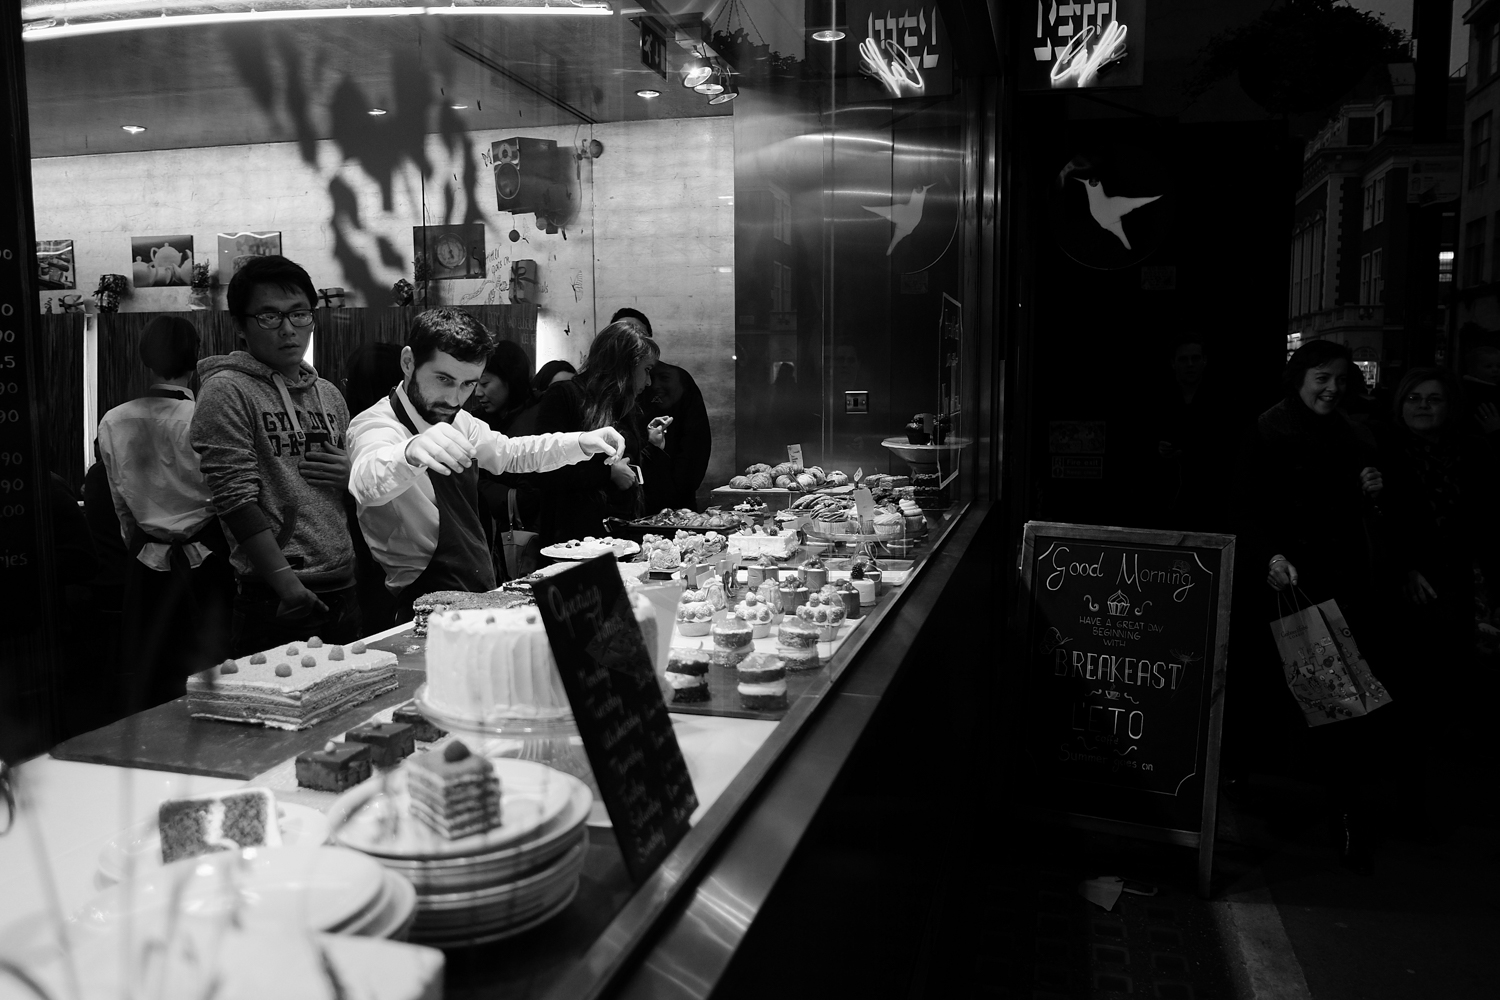 Fujifilm X-T1 jpeg file of a patisserie shop worker admiring his wares